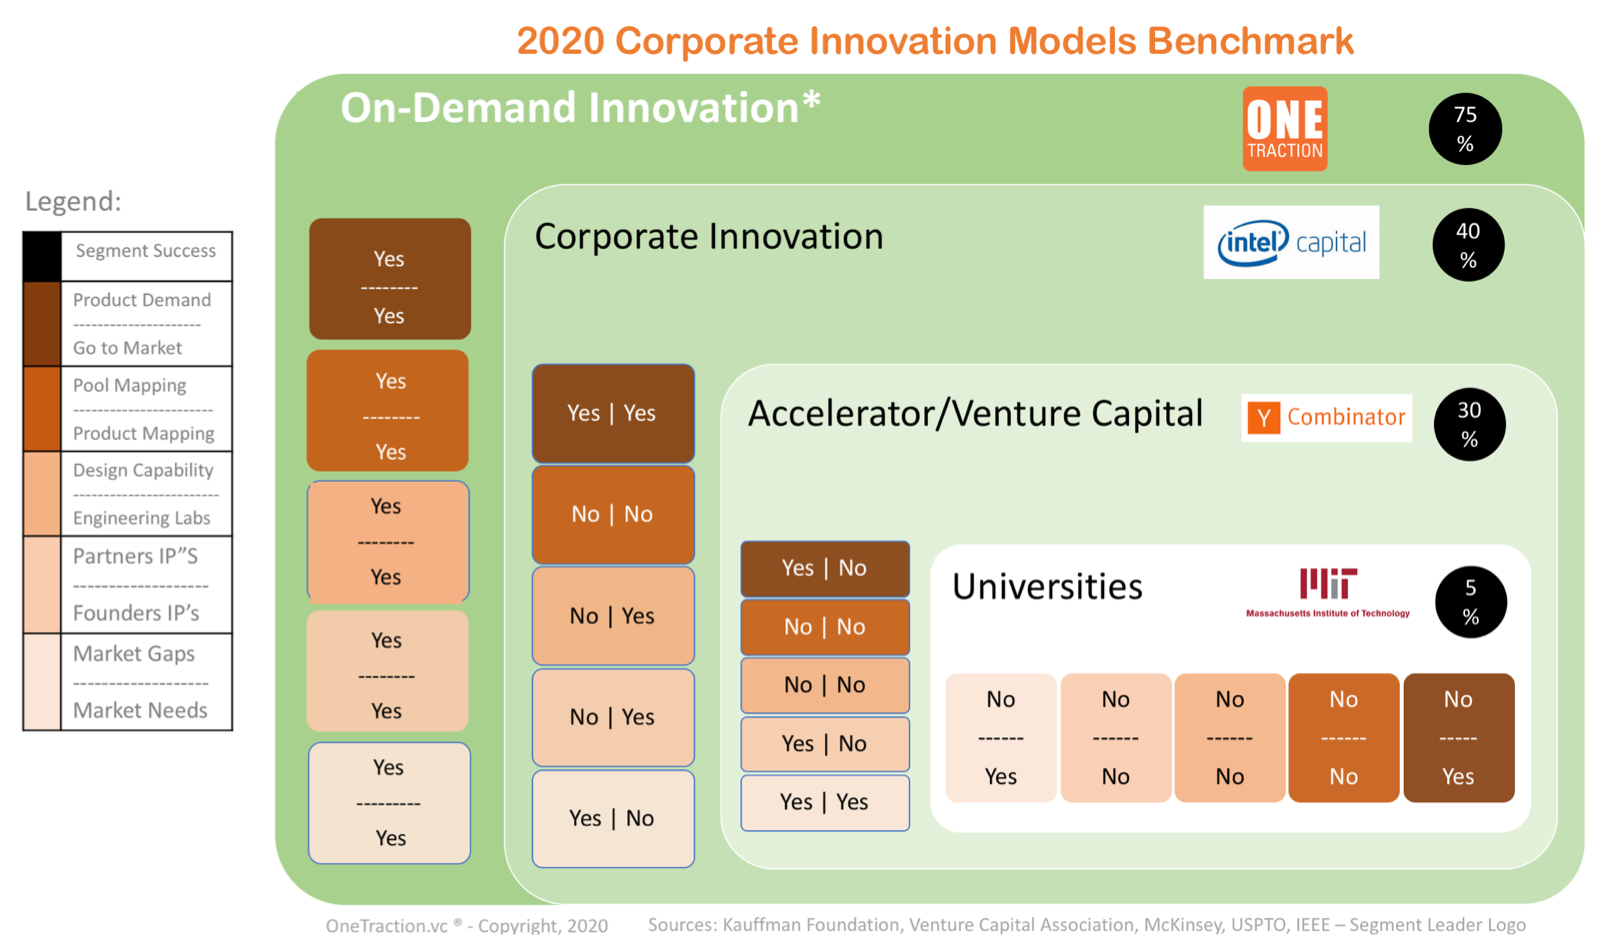 Figure 2: Corporate Innovation Models